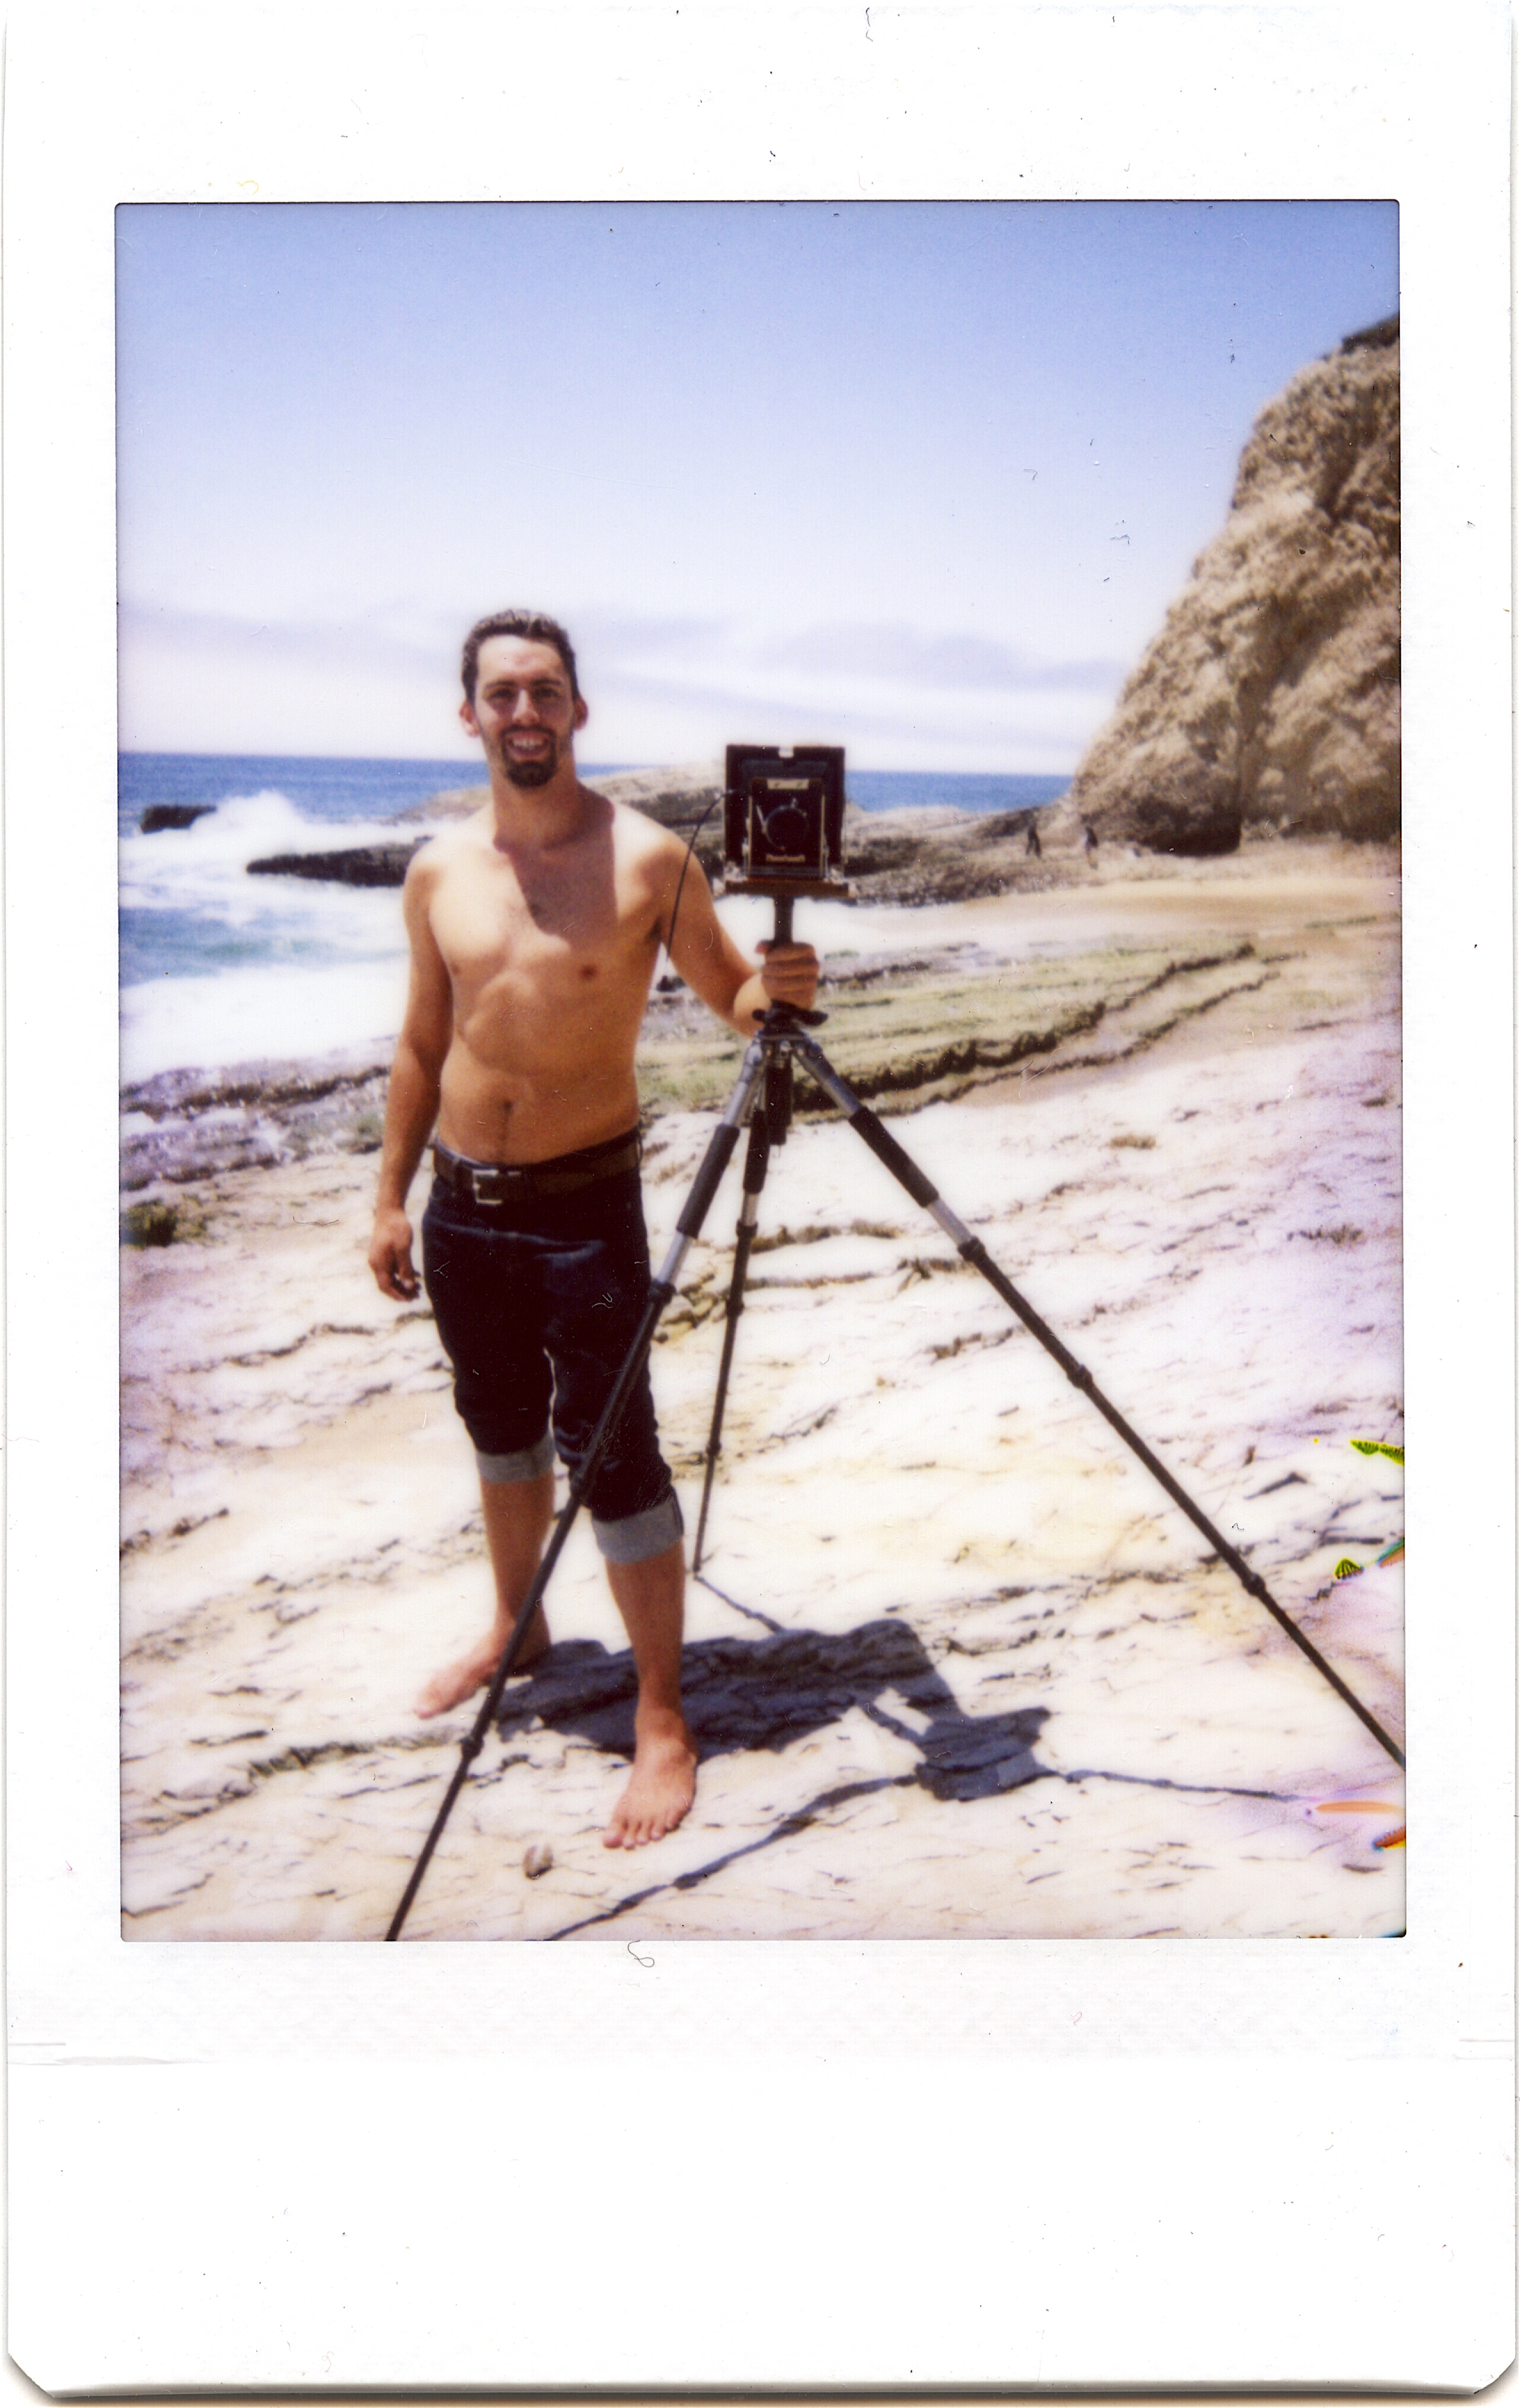 A Instant photo of me from 1967, posing with my new Nagaoka 4x5 at Panther Beach. Photo credit to my buddy Nick